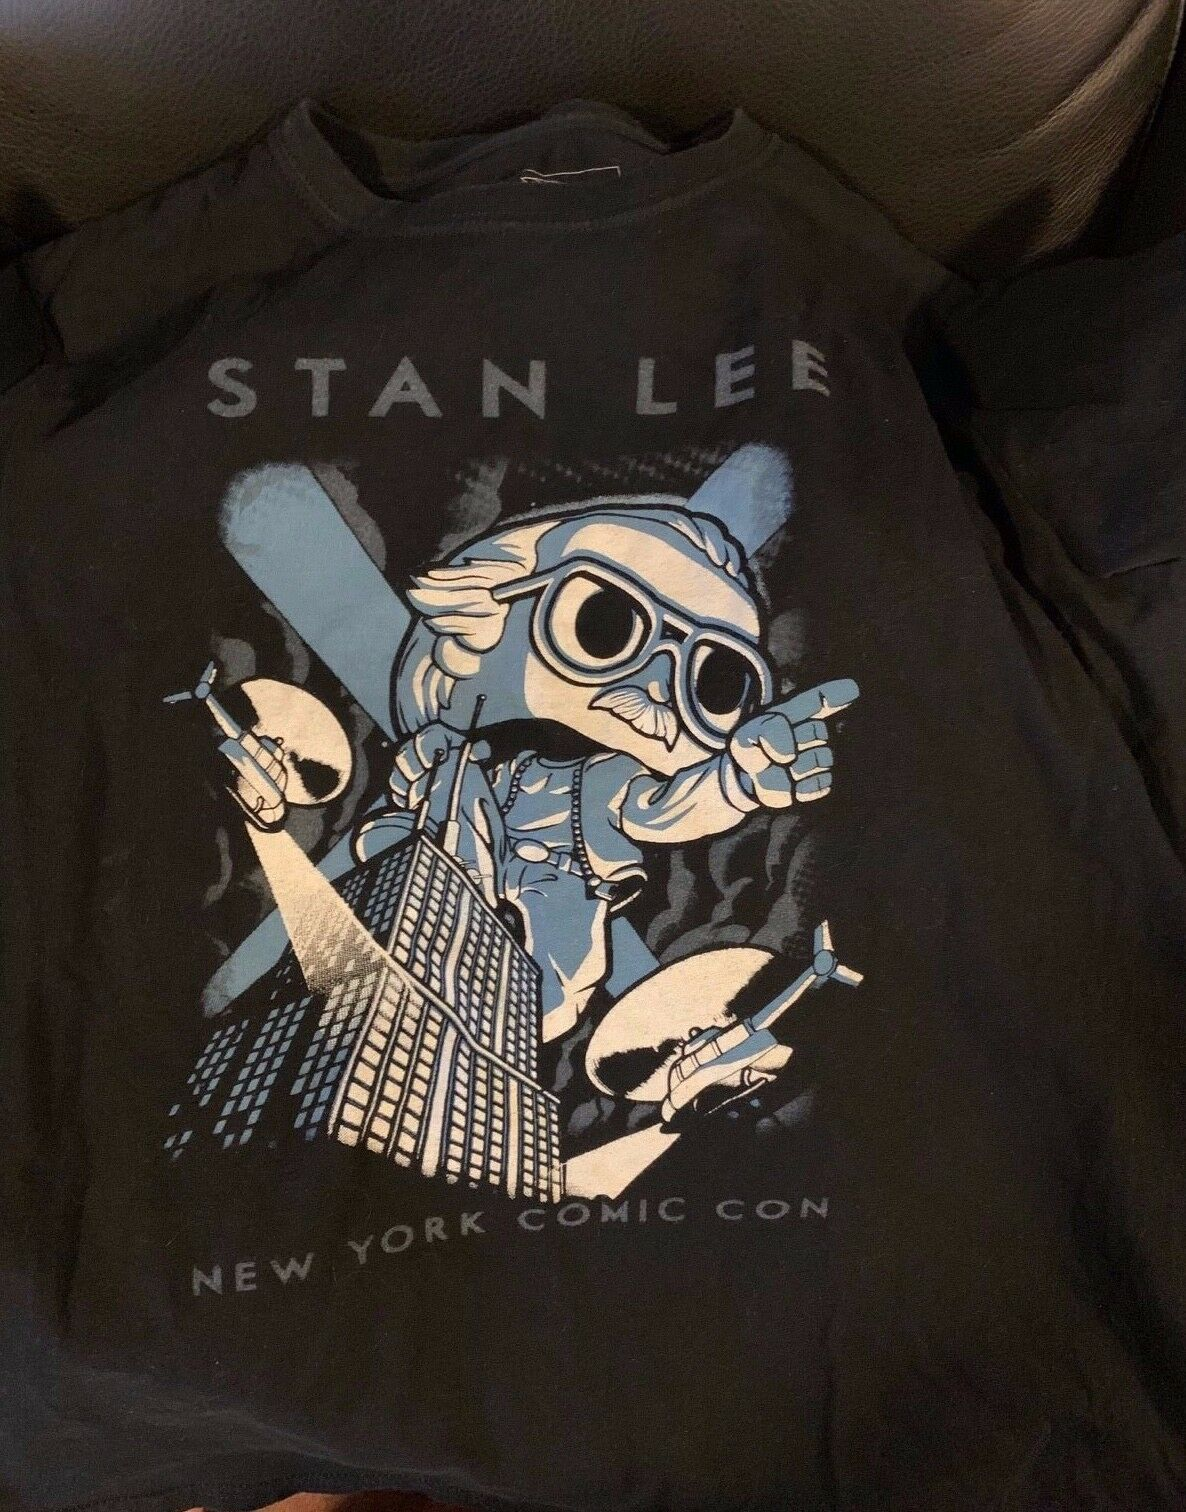 STAN LEE NYCC COMIC CON 2015 EXCLUSIVE FUNKO POP SHIRT M ONLY 250 MADE KING KONG